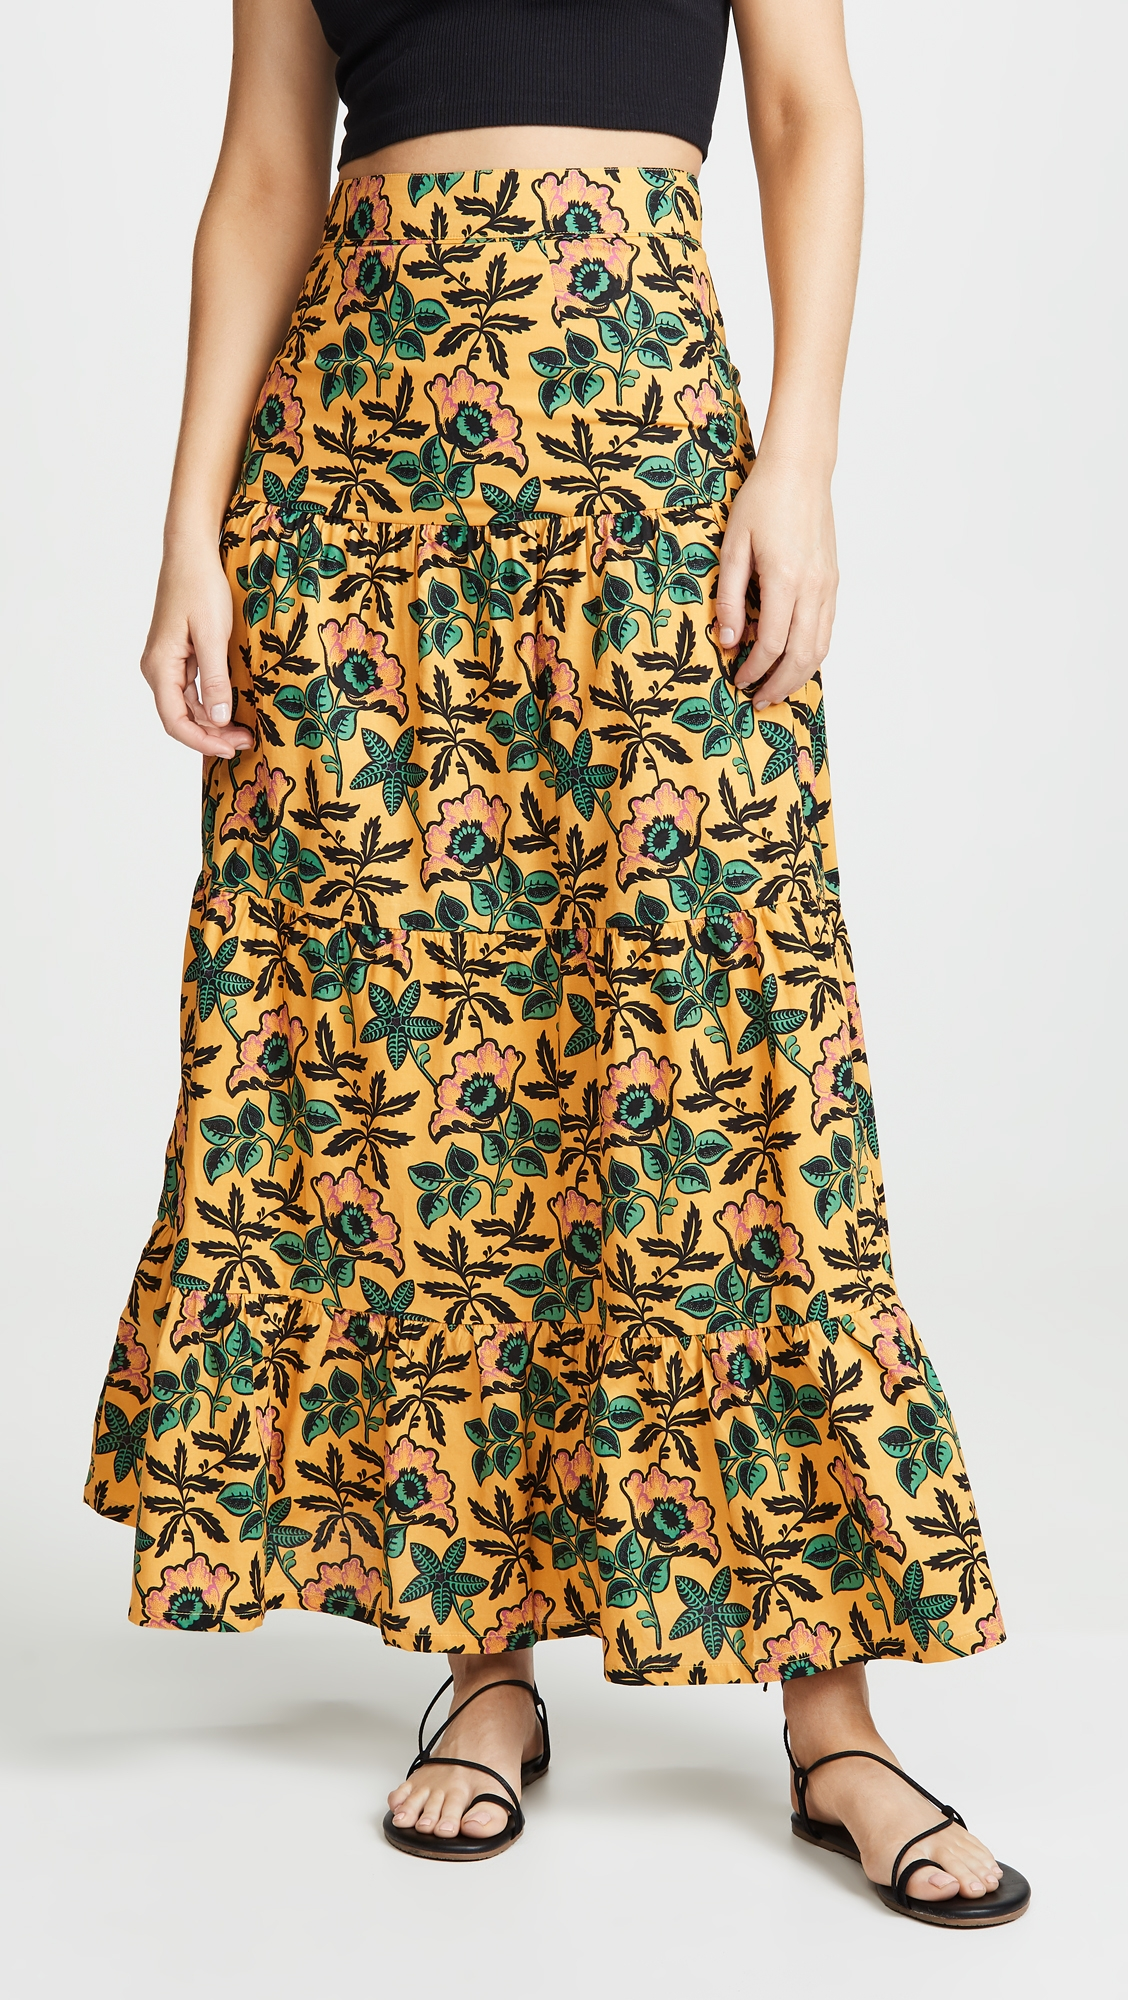 e00c5d5348 Maxi Skirt in 2019 | Products | Skirts, Scotch soda, High waisted skirt